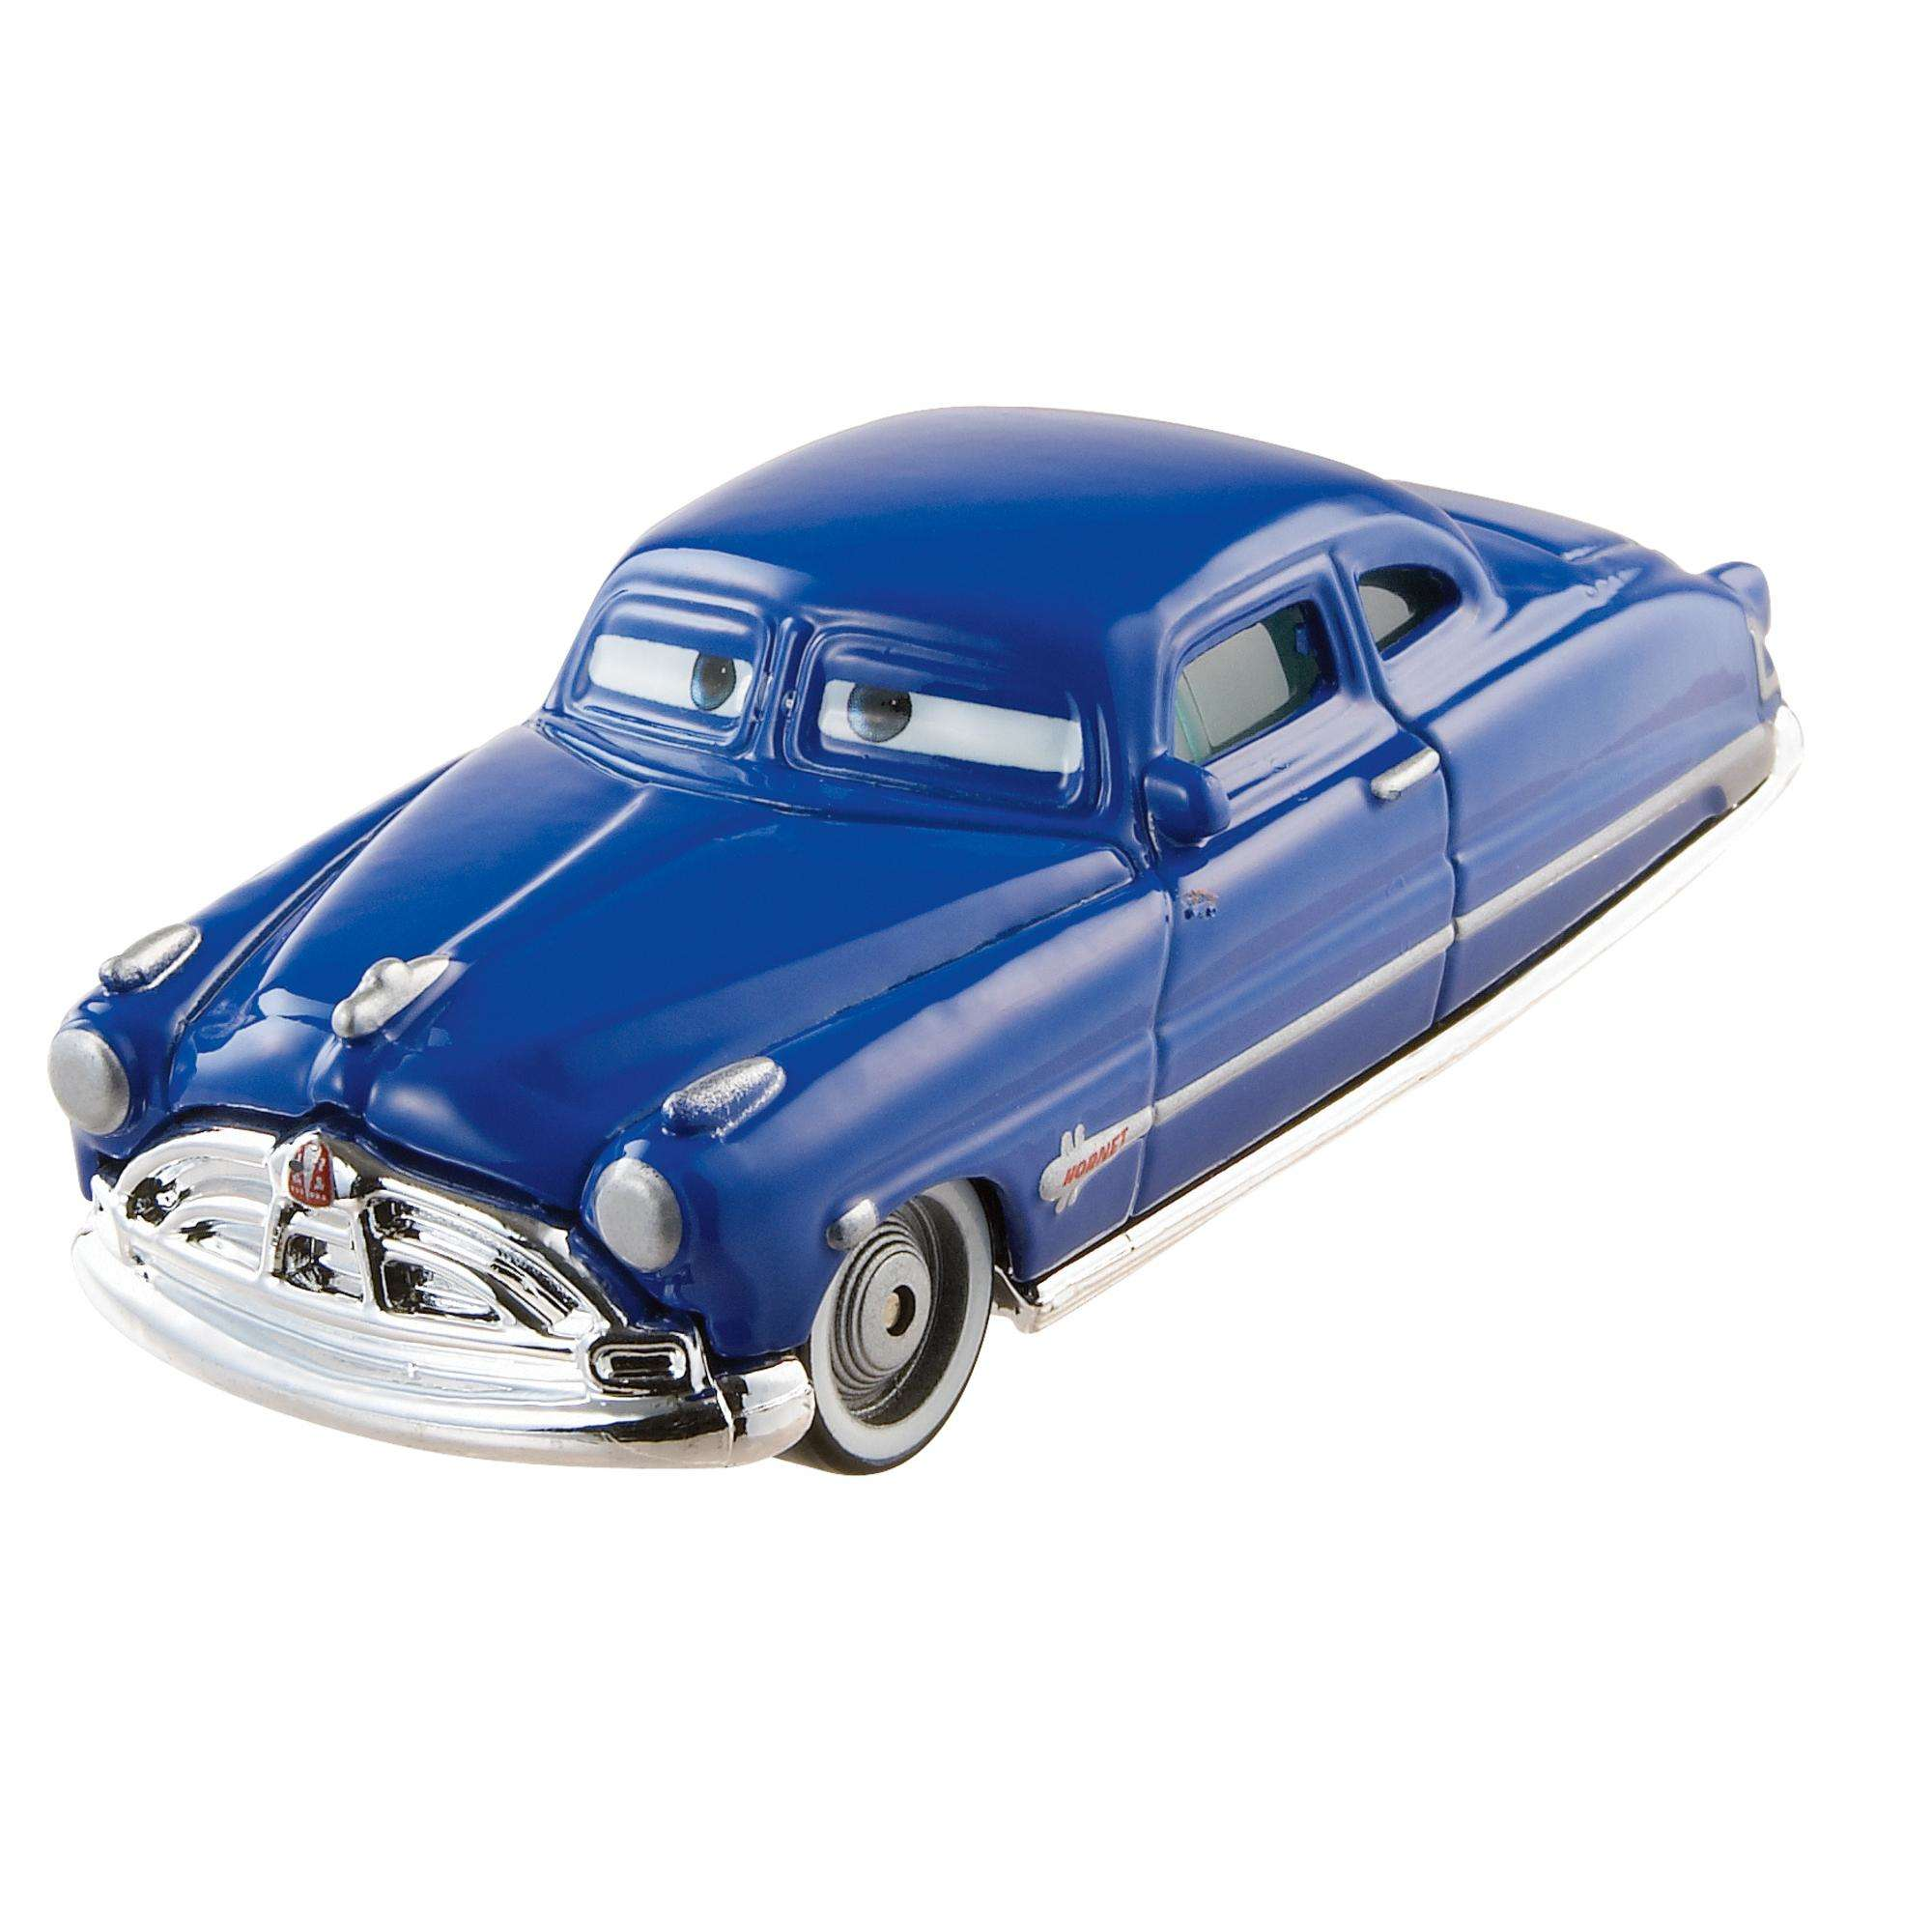 Disney/Pixar Cars Radiator Springs Doc Hudson 1:55 Diecast Car #11/19